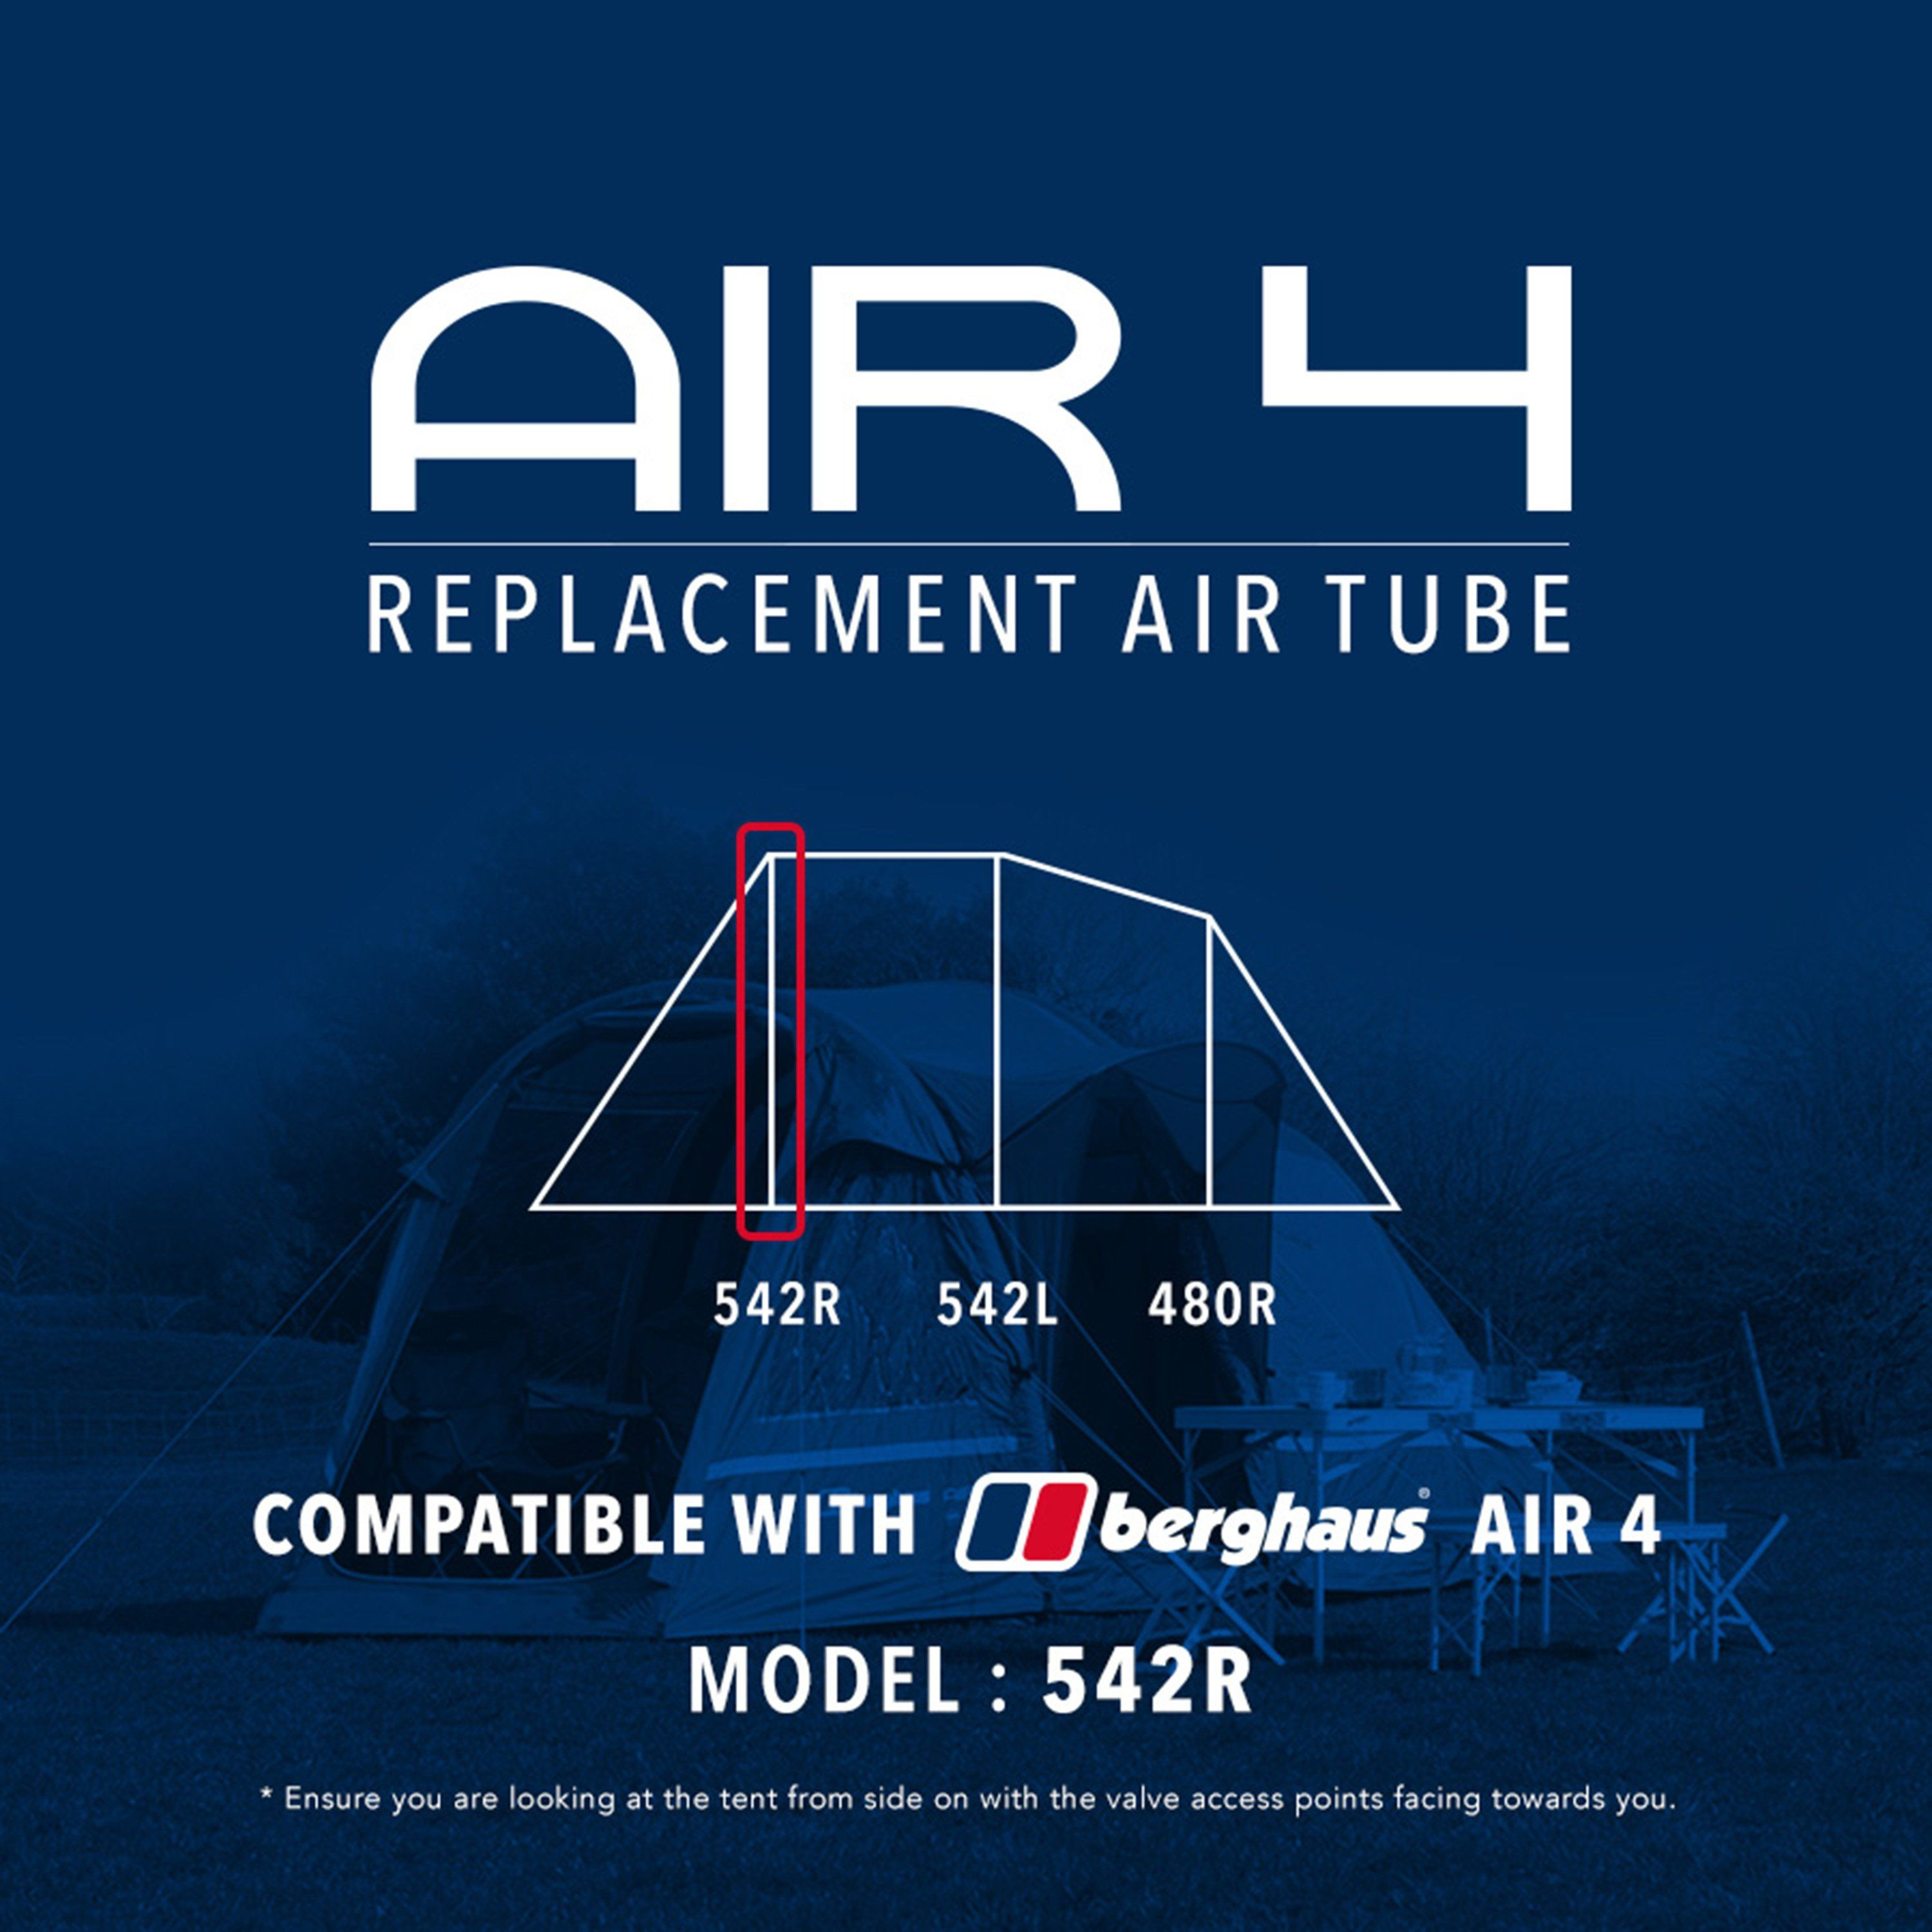 EUROHIKE Air 4 Tent Replacement Air Tube - 542R